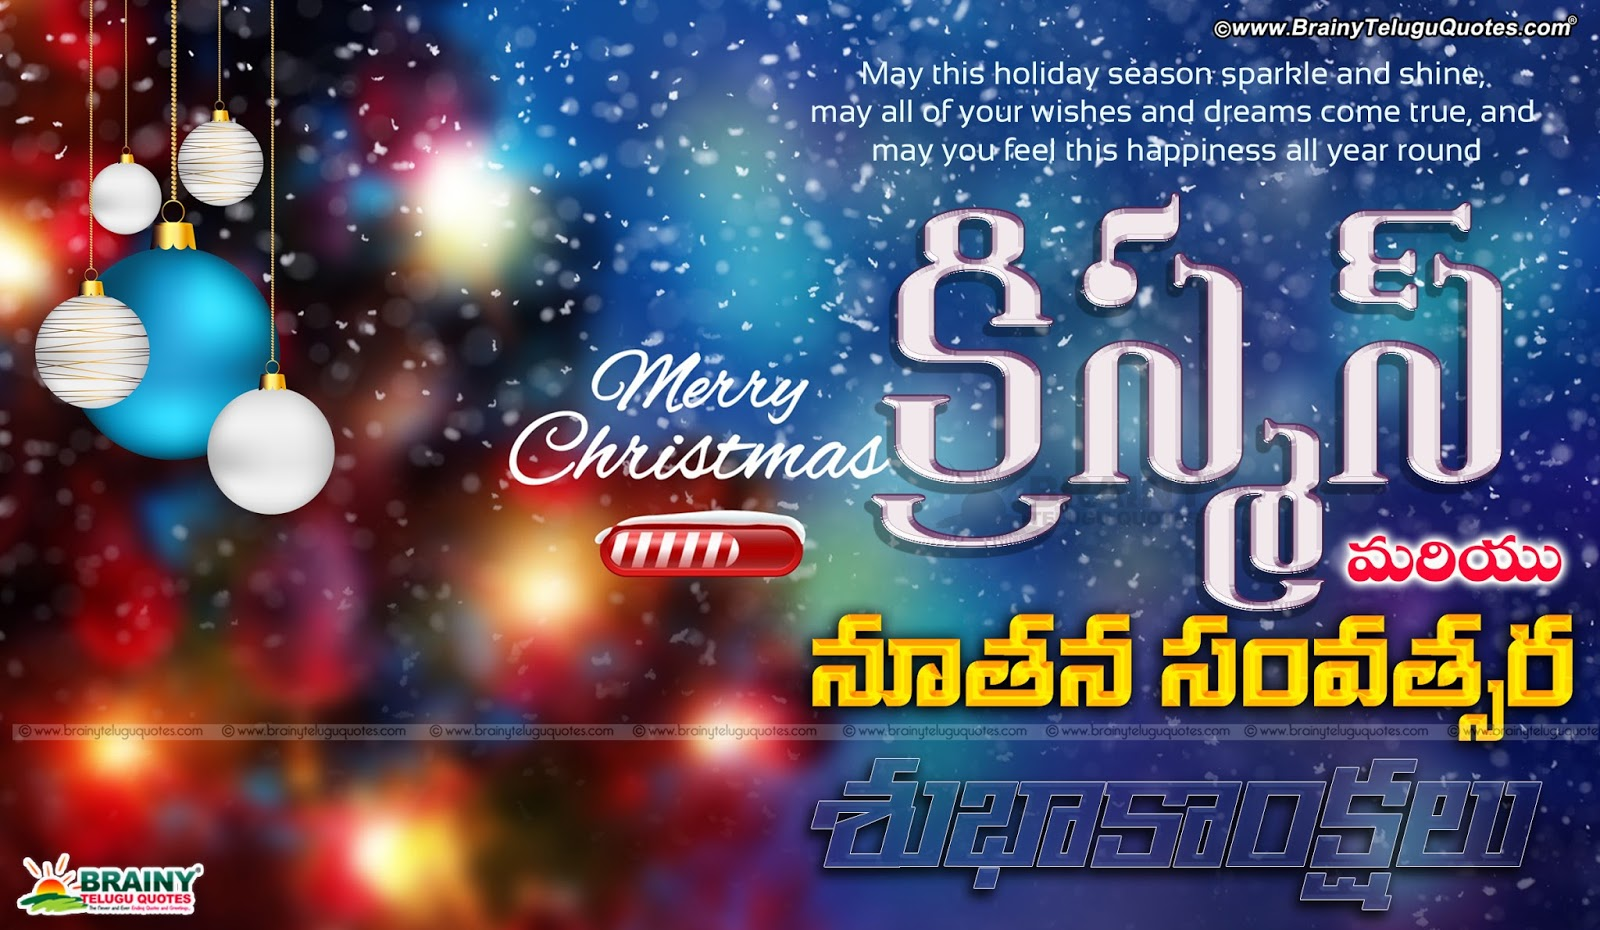 Happy Christmas And New Year Quotes Greetings In Telugu New Year